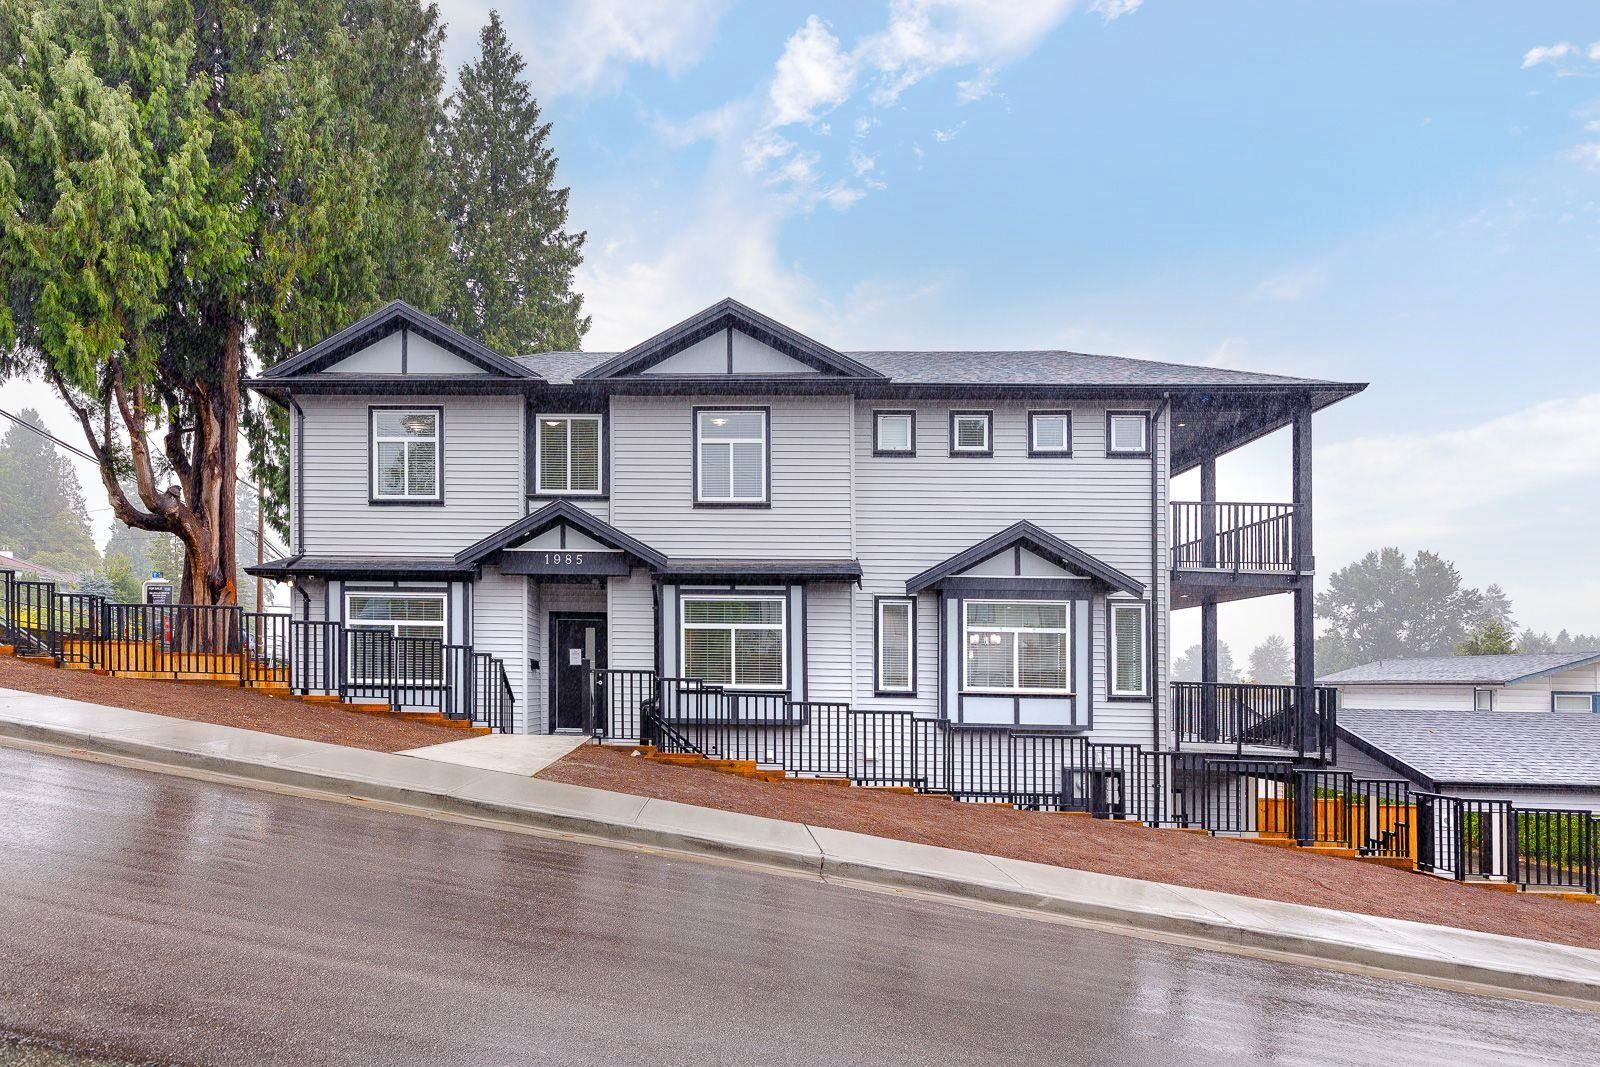 Main Photo: 1985 WARWICK Avenue in Port Coquitlam: Mary Hill House for sale : MLS®# R2551736